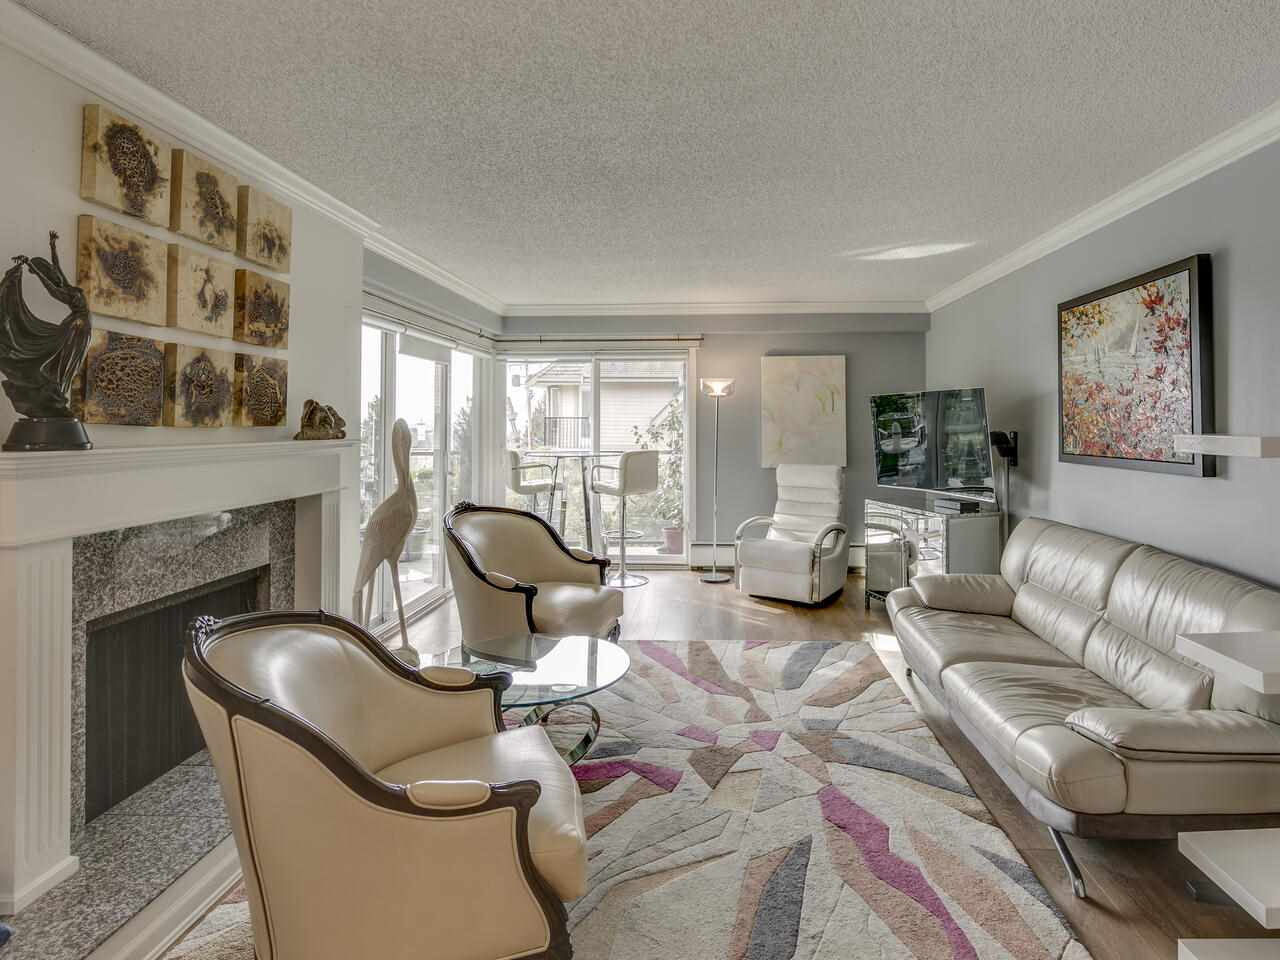 205 1515 CHESTERFIELD AVENUE - Central Lonsdale Apartment/Condo for sale, 2 Bedrooms (R2543051) - #1